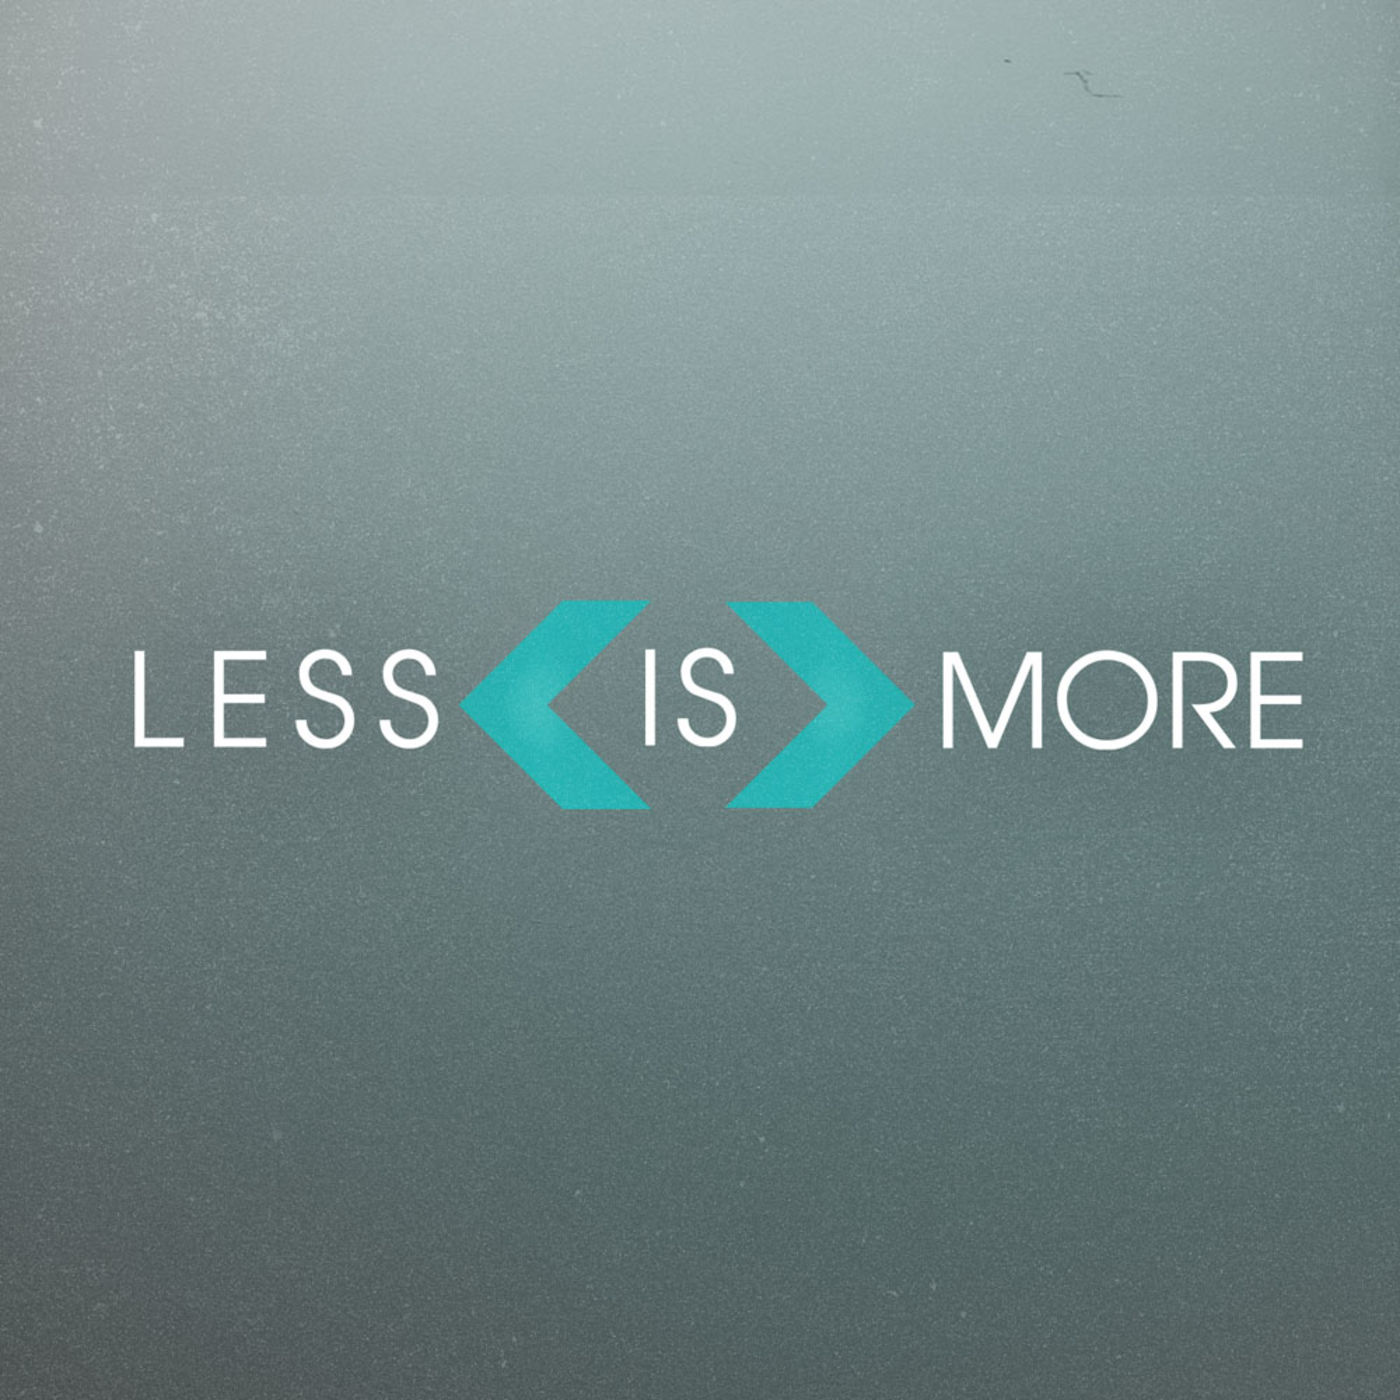 Less Preference | More Deference